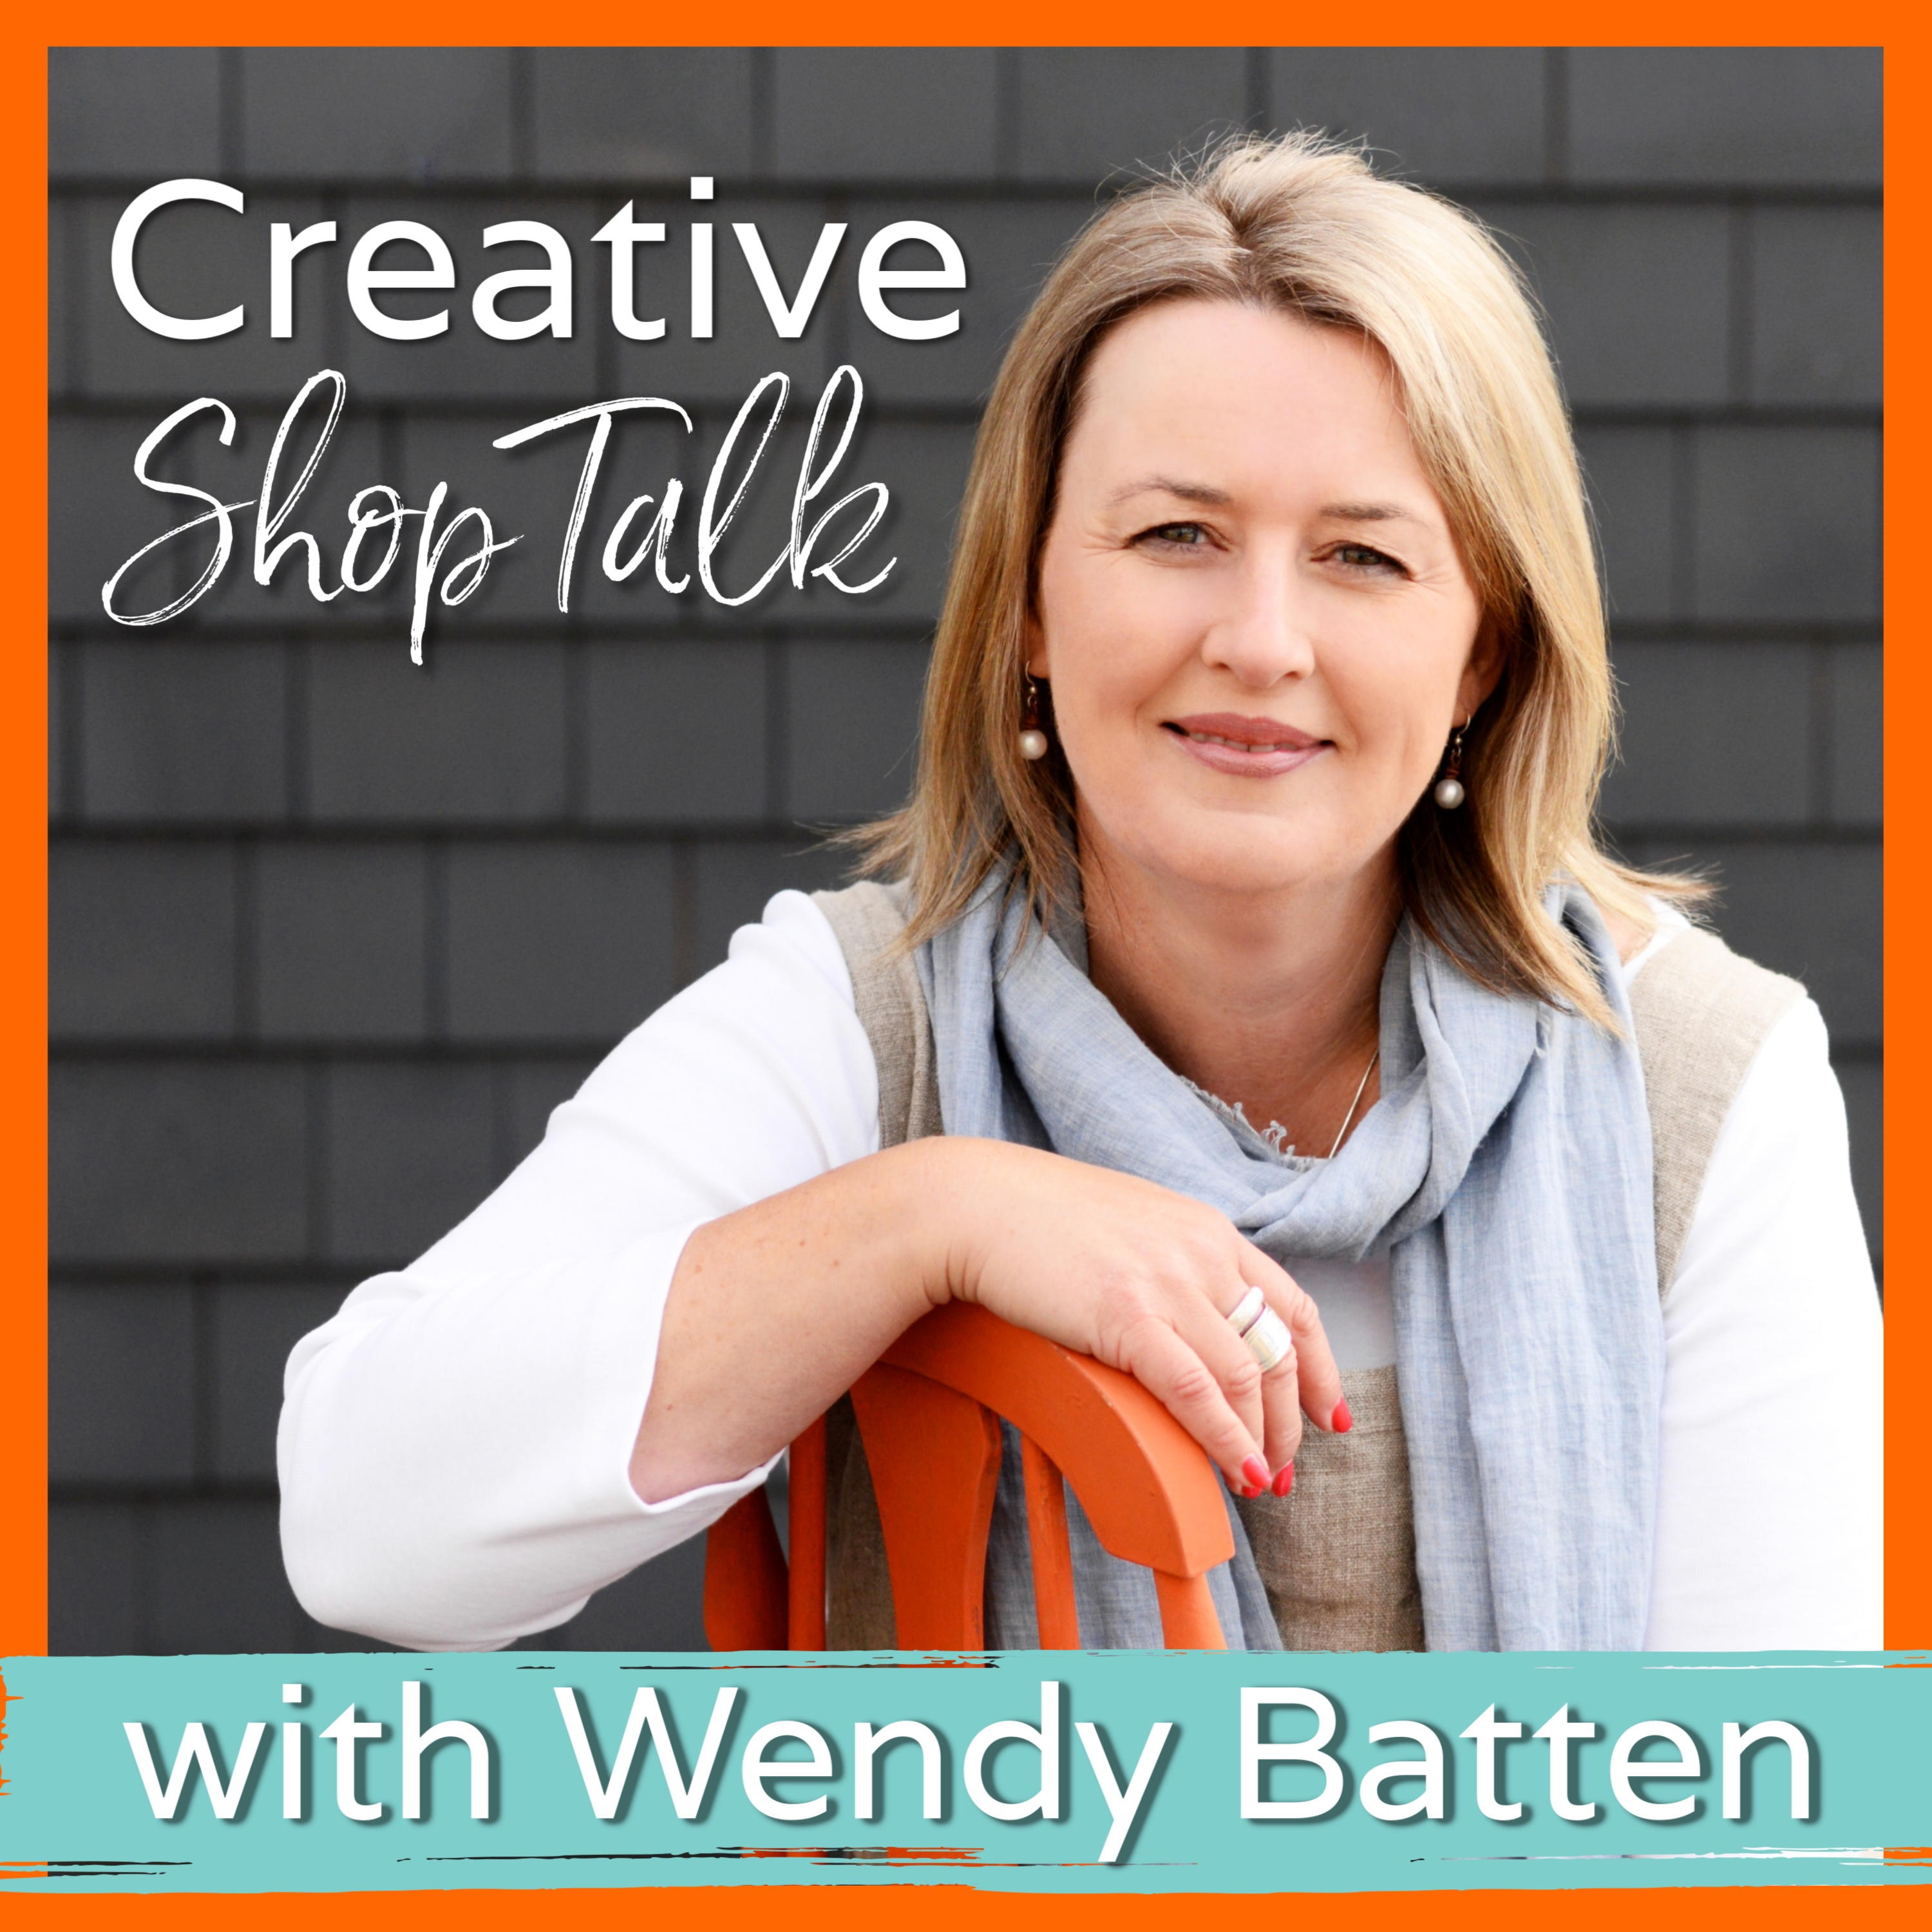 Creative Shop Talk with Wendy Batten